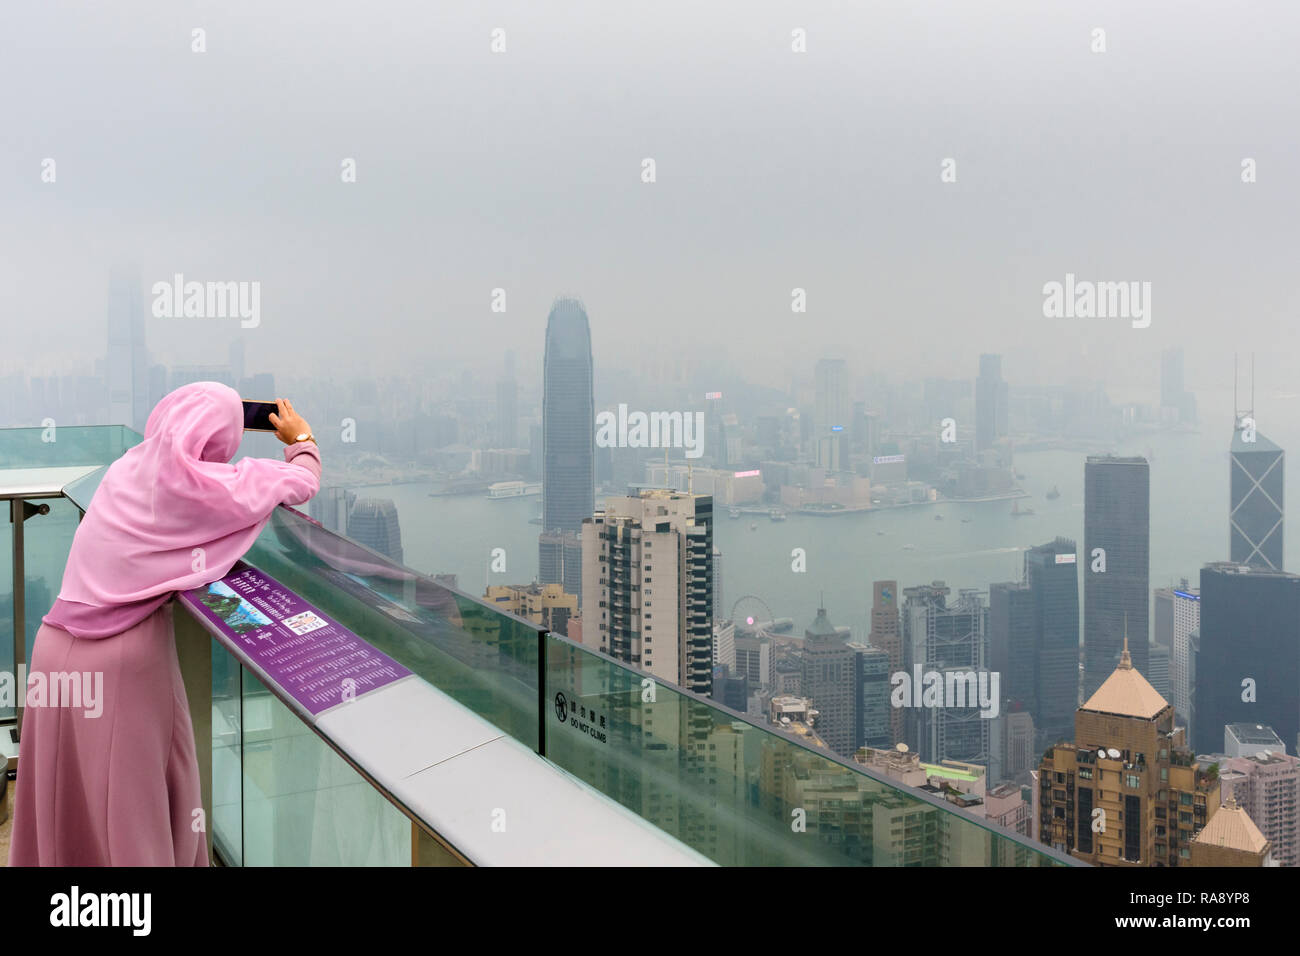 Woman takes a mobile phone photo on the deck of The Peak Tower viewing platform restricted by the haze from air pollution, Hong Kong - Stock Image